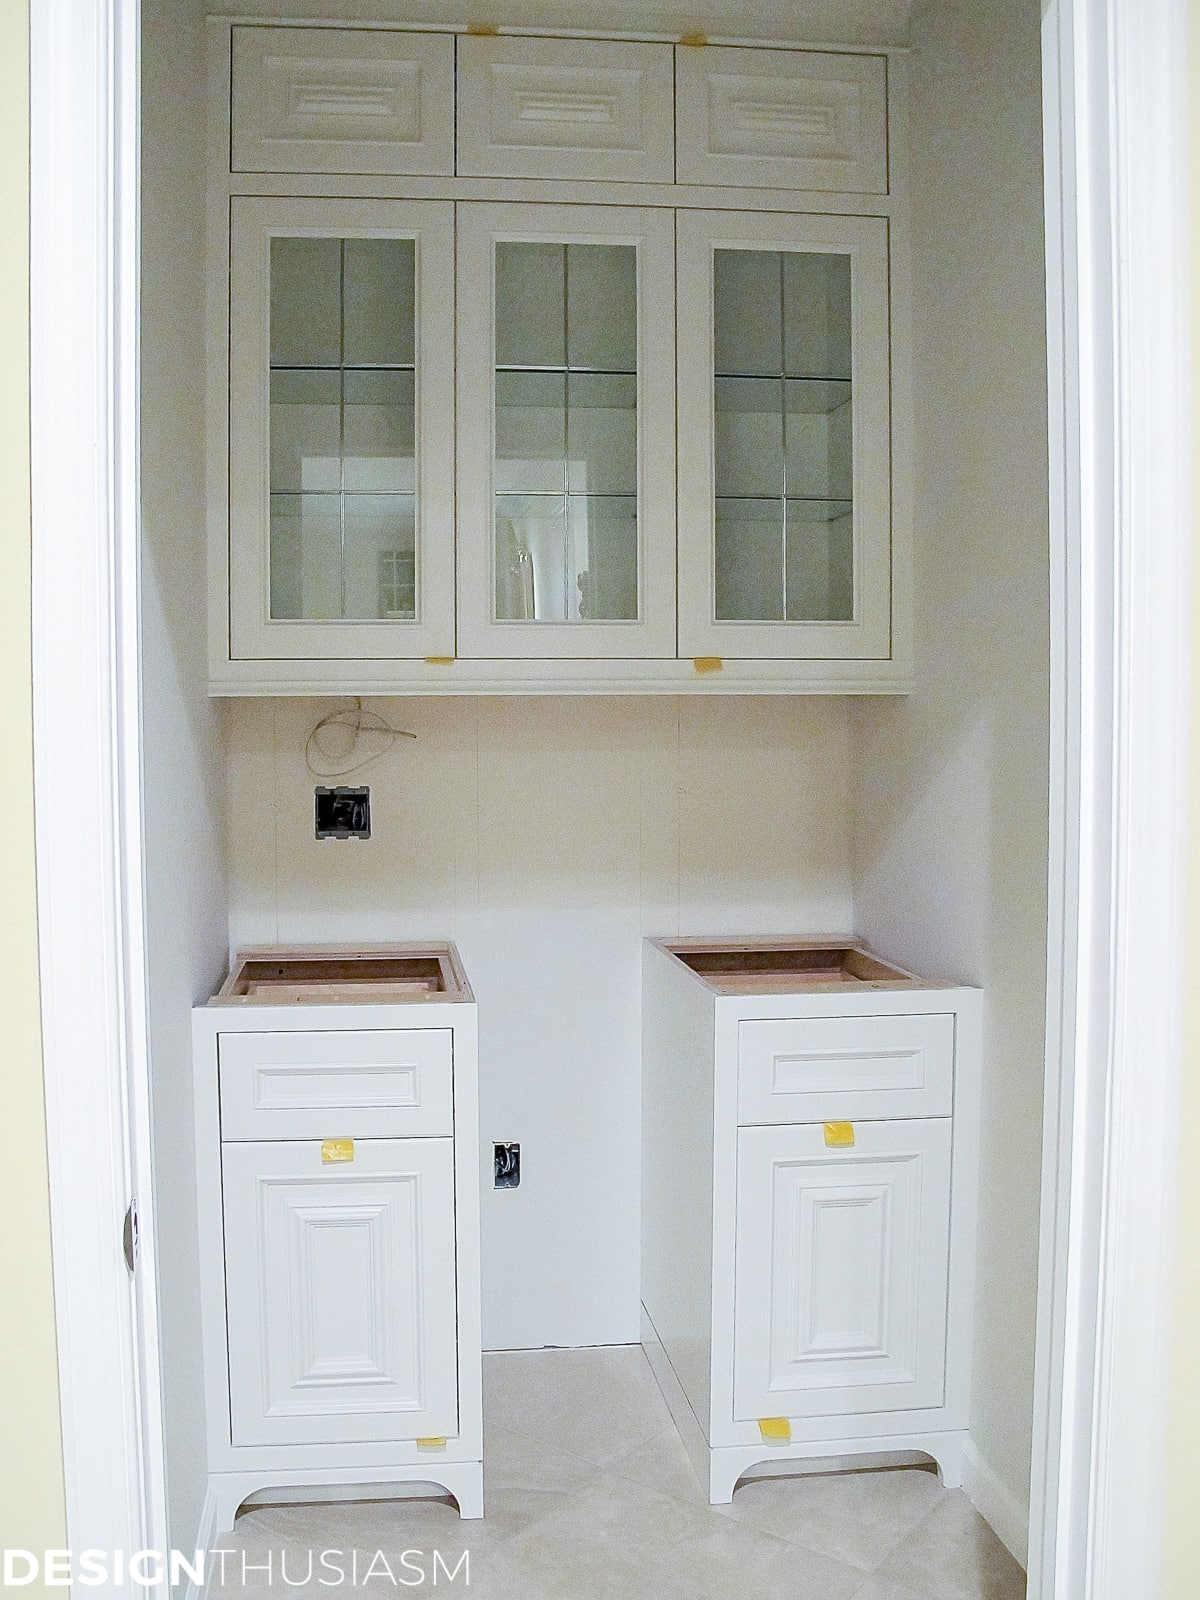 Closet Pantry From Storage Closet To A Dream Butler S Pantry A Renovation